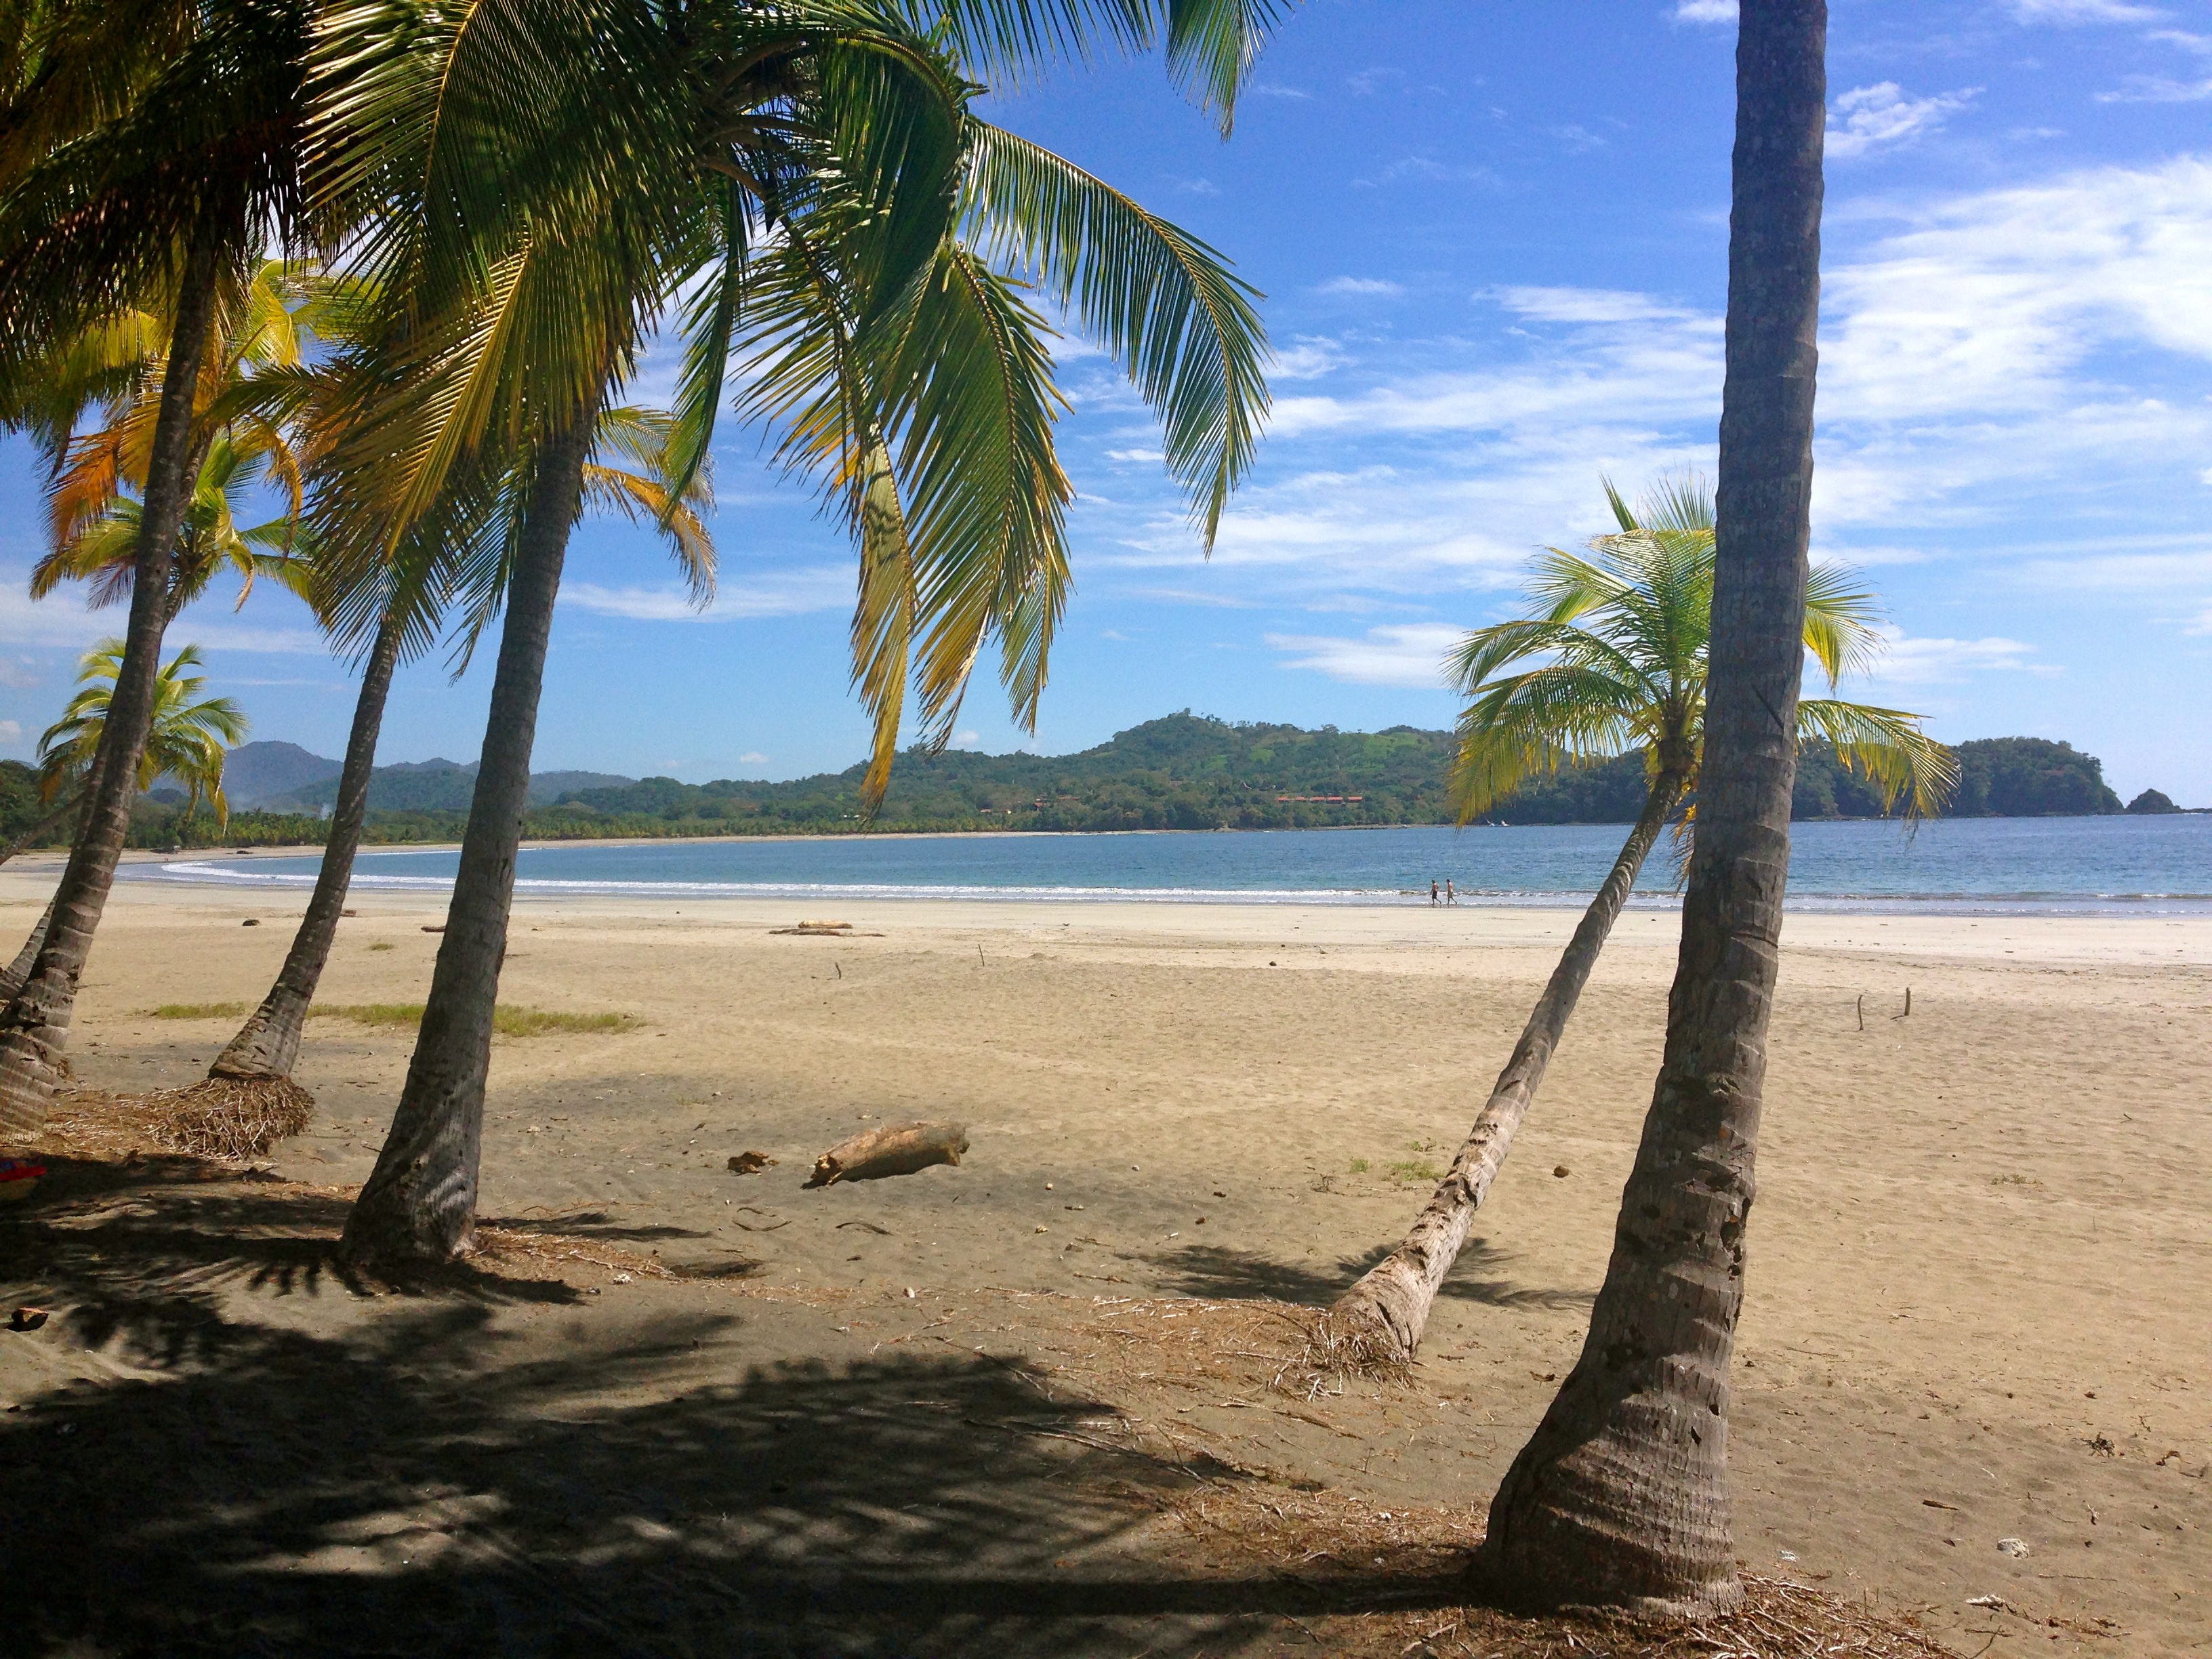 The province of Guanacaste has some of the best beaches